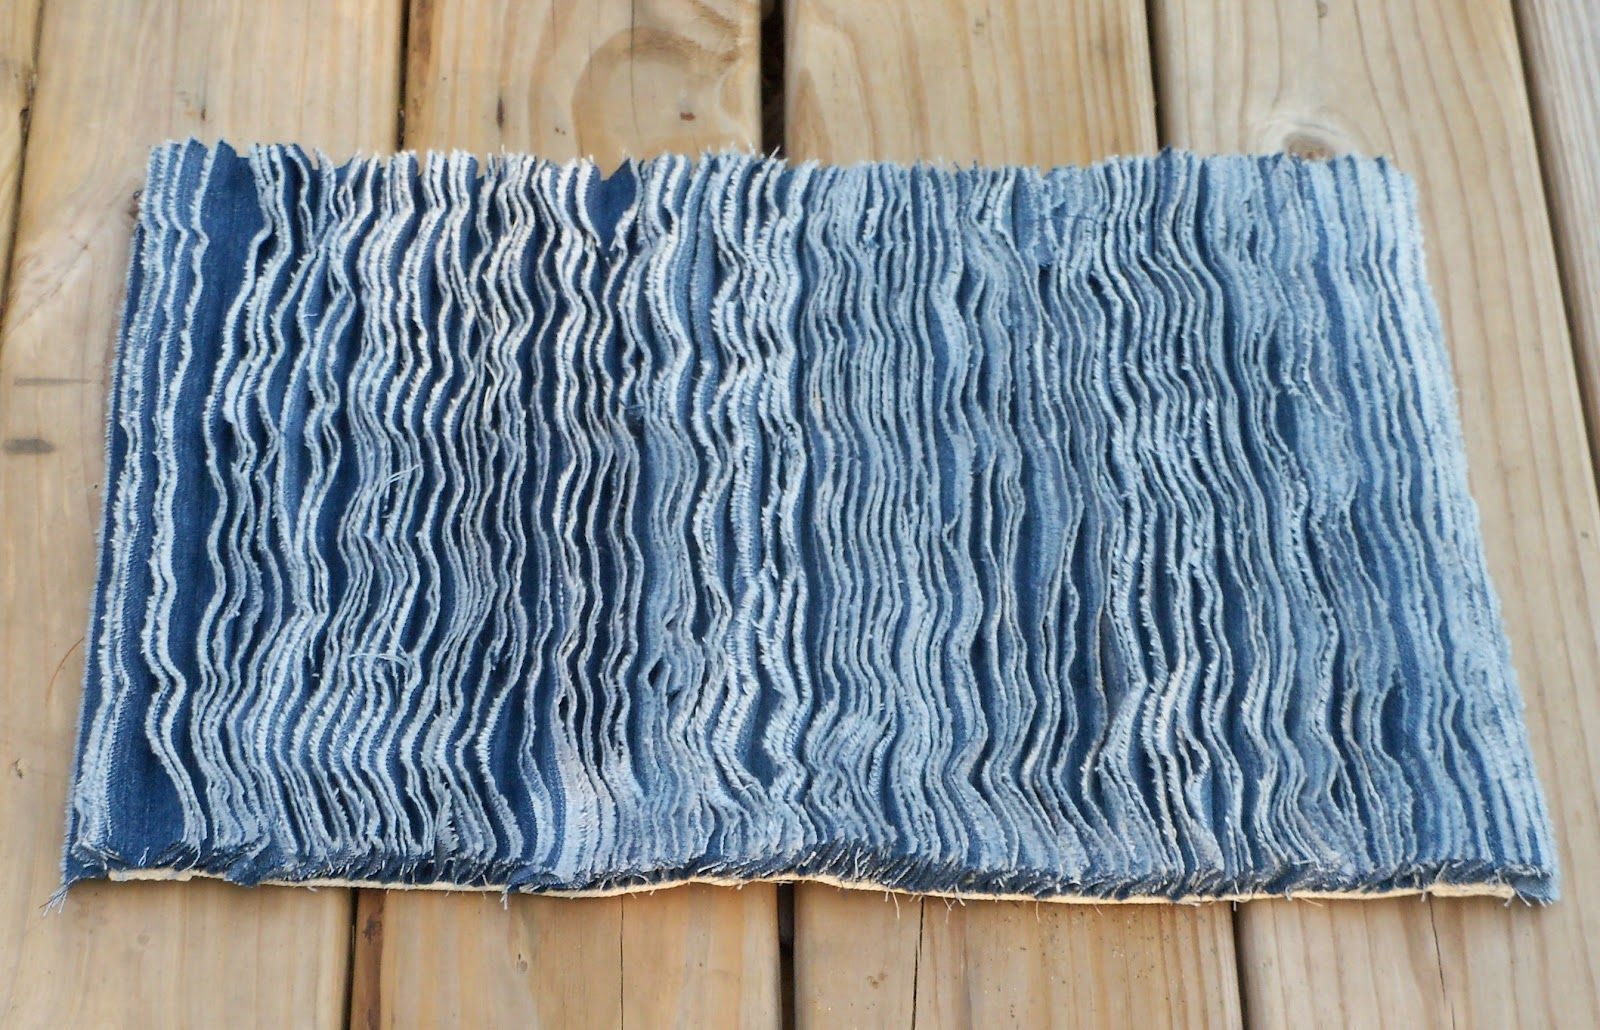 Denim Rugs From Old Jeans At Sewing Cafe Repupose